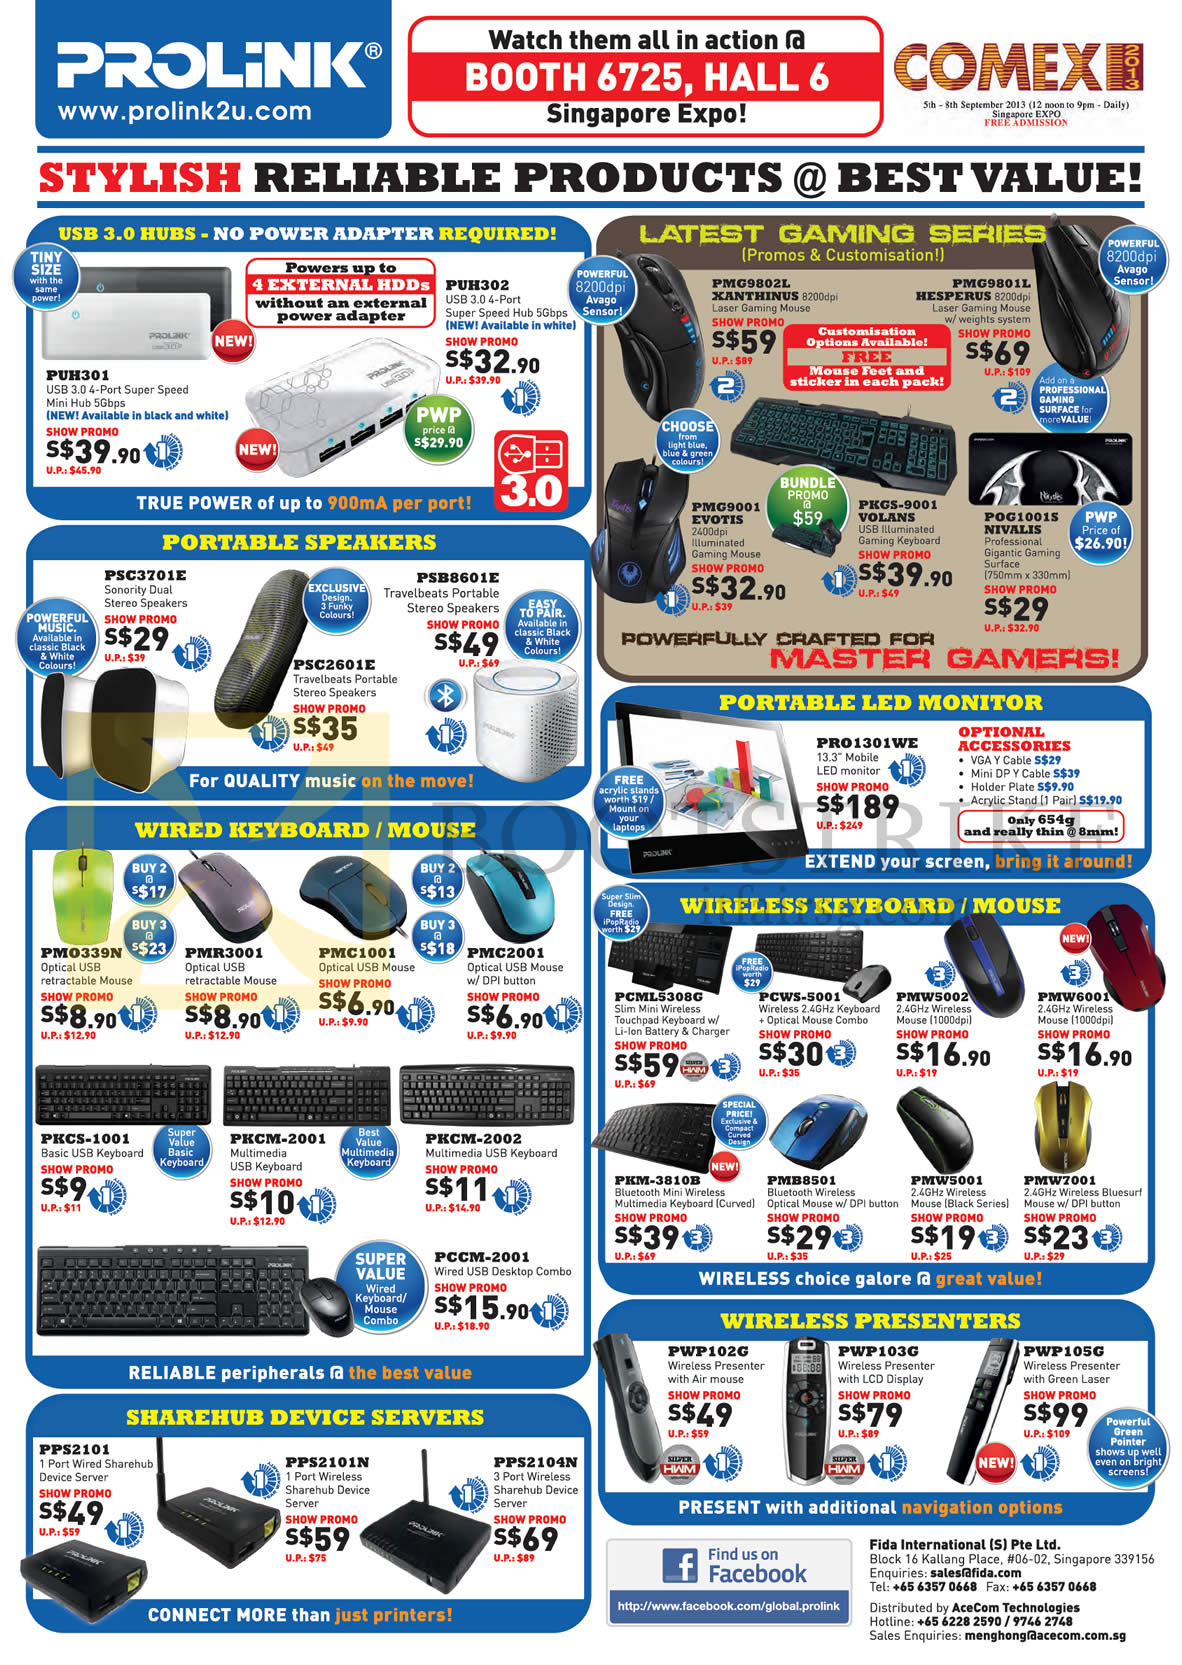 COMEX 2013 price list image brochure of Cybermind Prolink USB Hubs, Mouse, Keyboards, Speakers,LED Monitor, Wireless Pointers, Presenter, Sharehub Device Servers